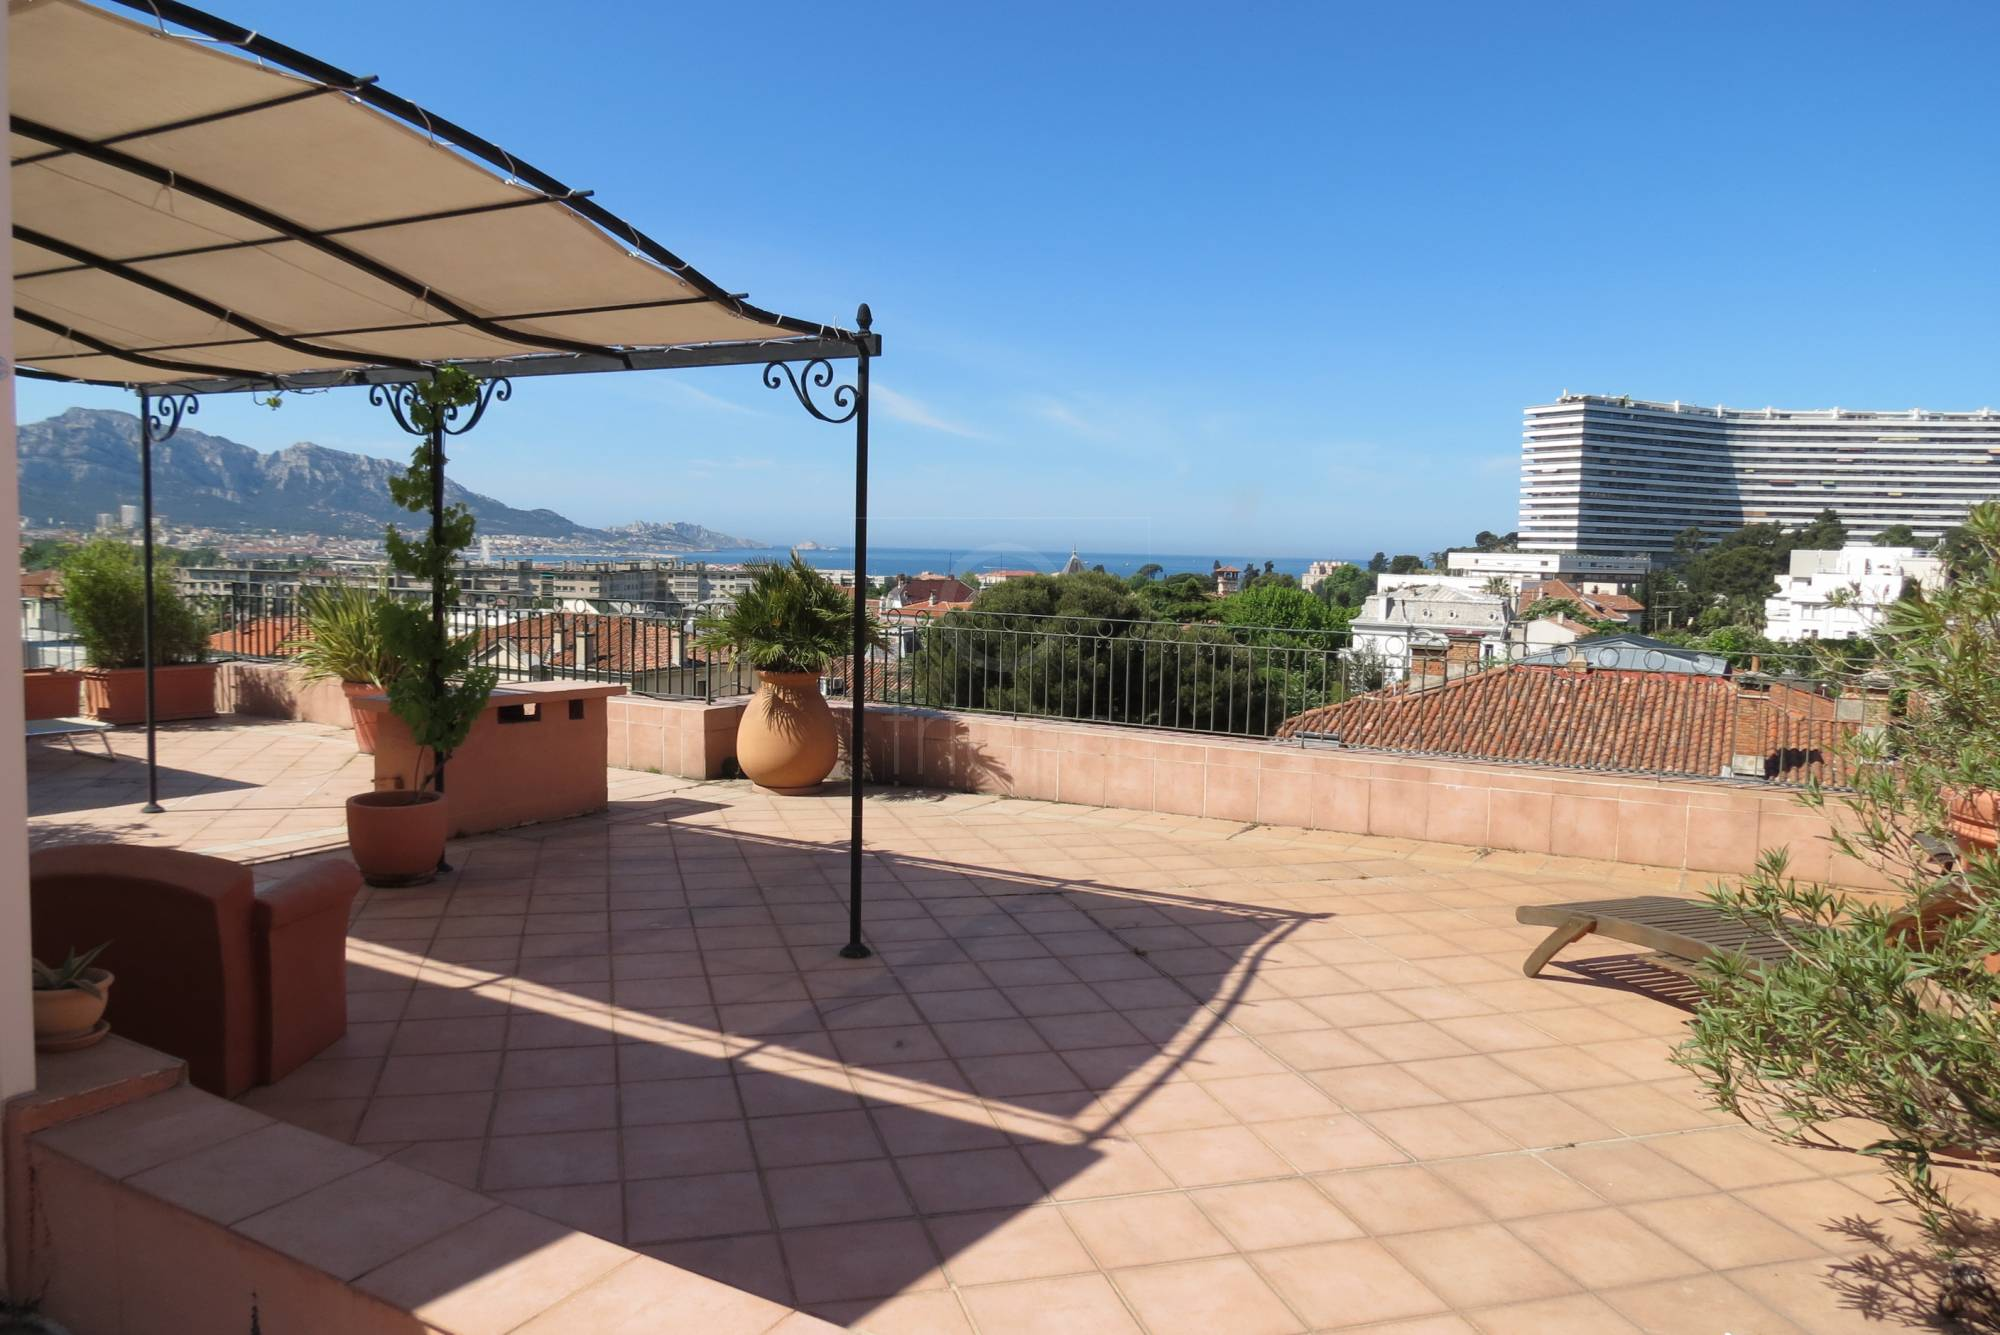 Vente appartement t4 f4 marseille 8eme rue paradis toit for Appartement t4 avec terrasse marseille